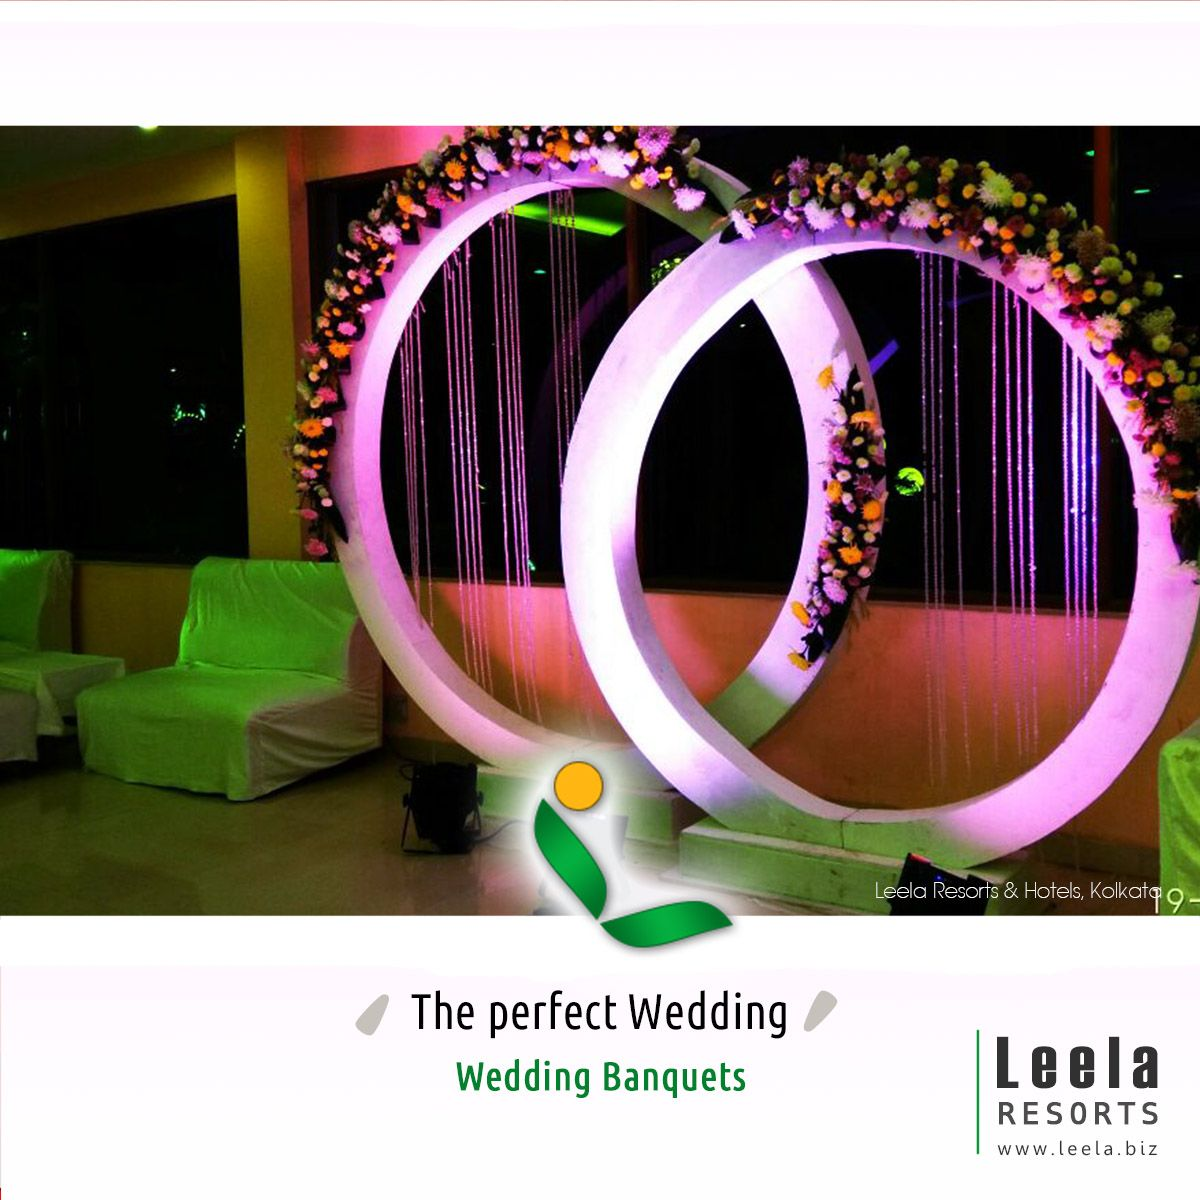 Plan Your Wedding With Us ! Weddings In Kolkata Are A Big